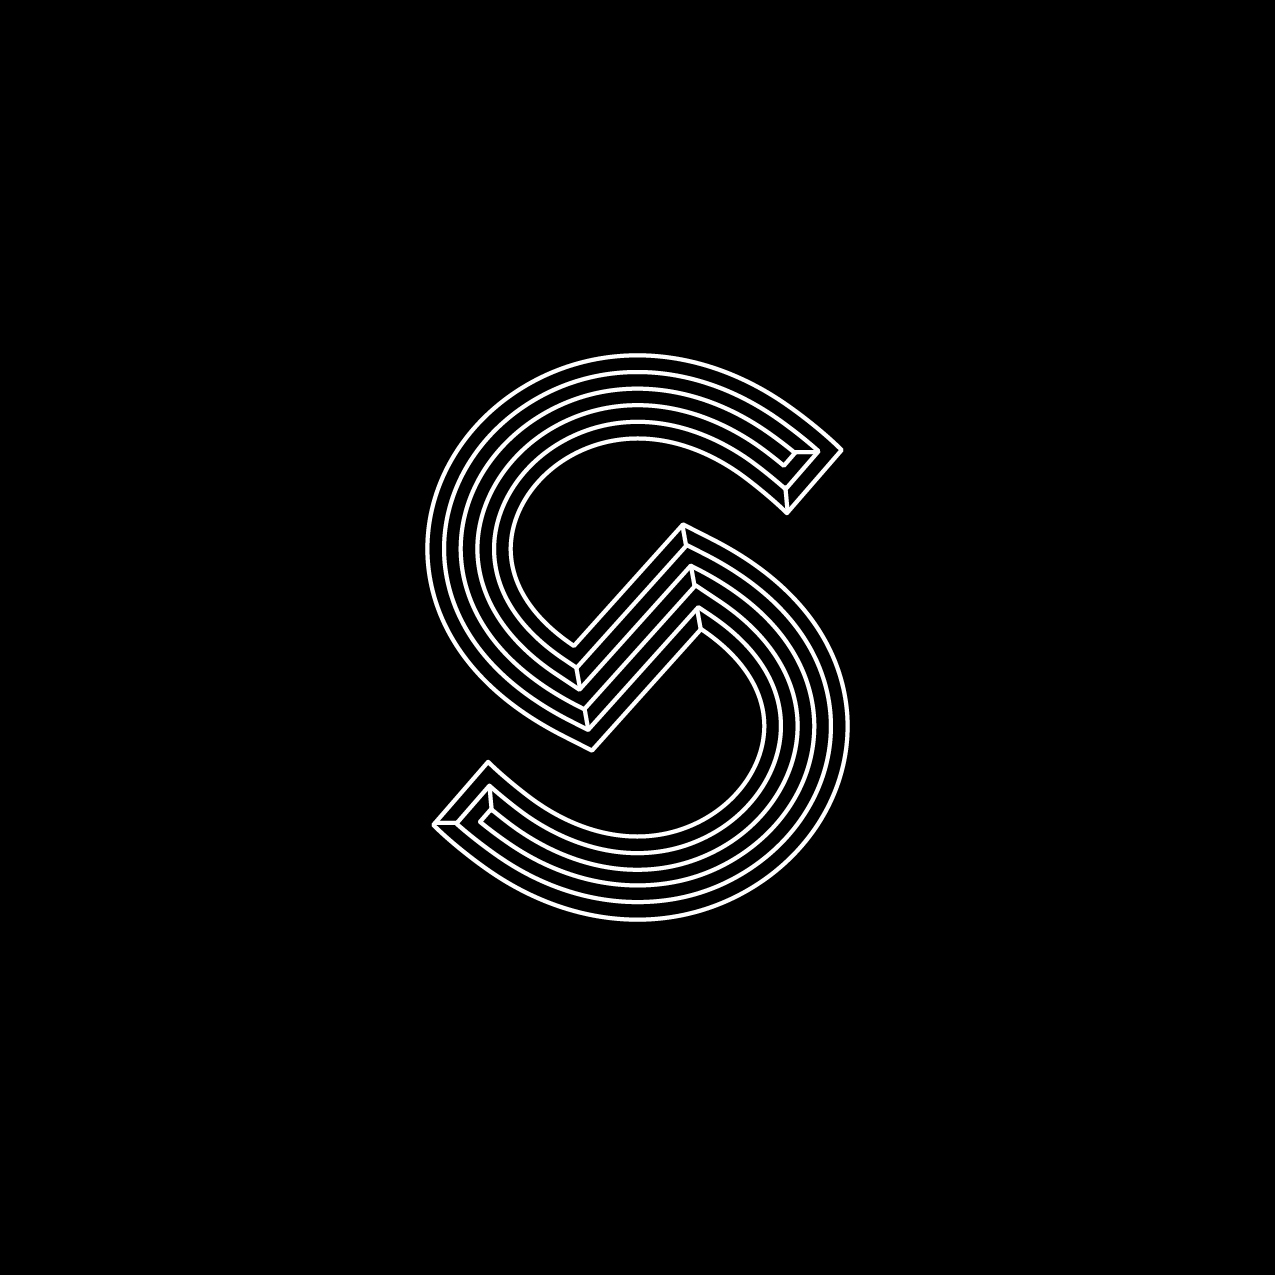 Letter S13 Design by Furia